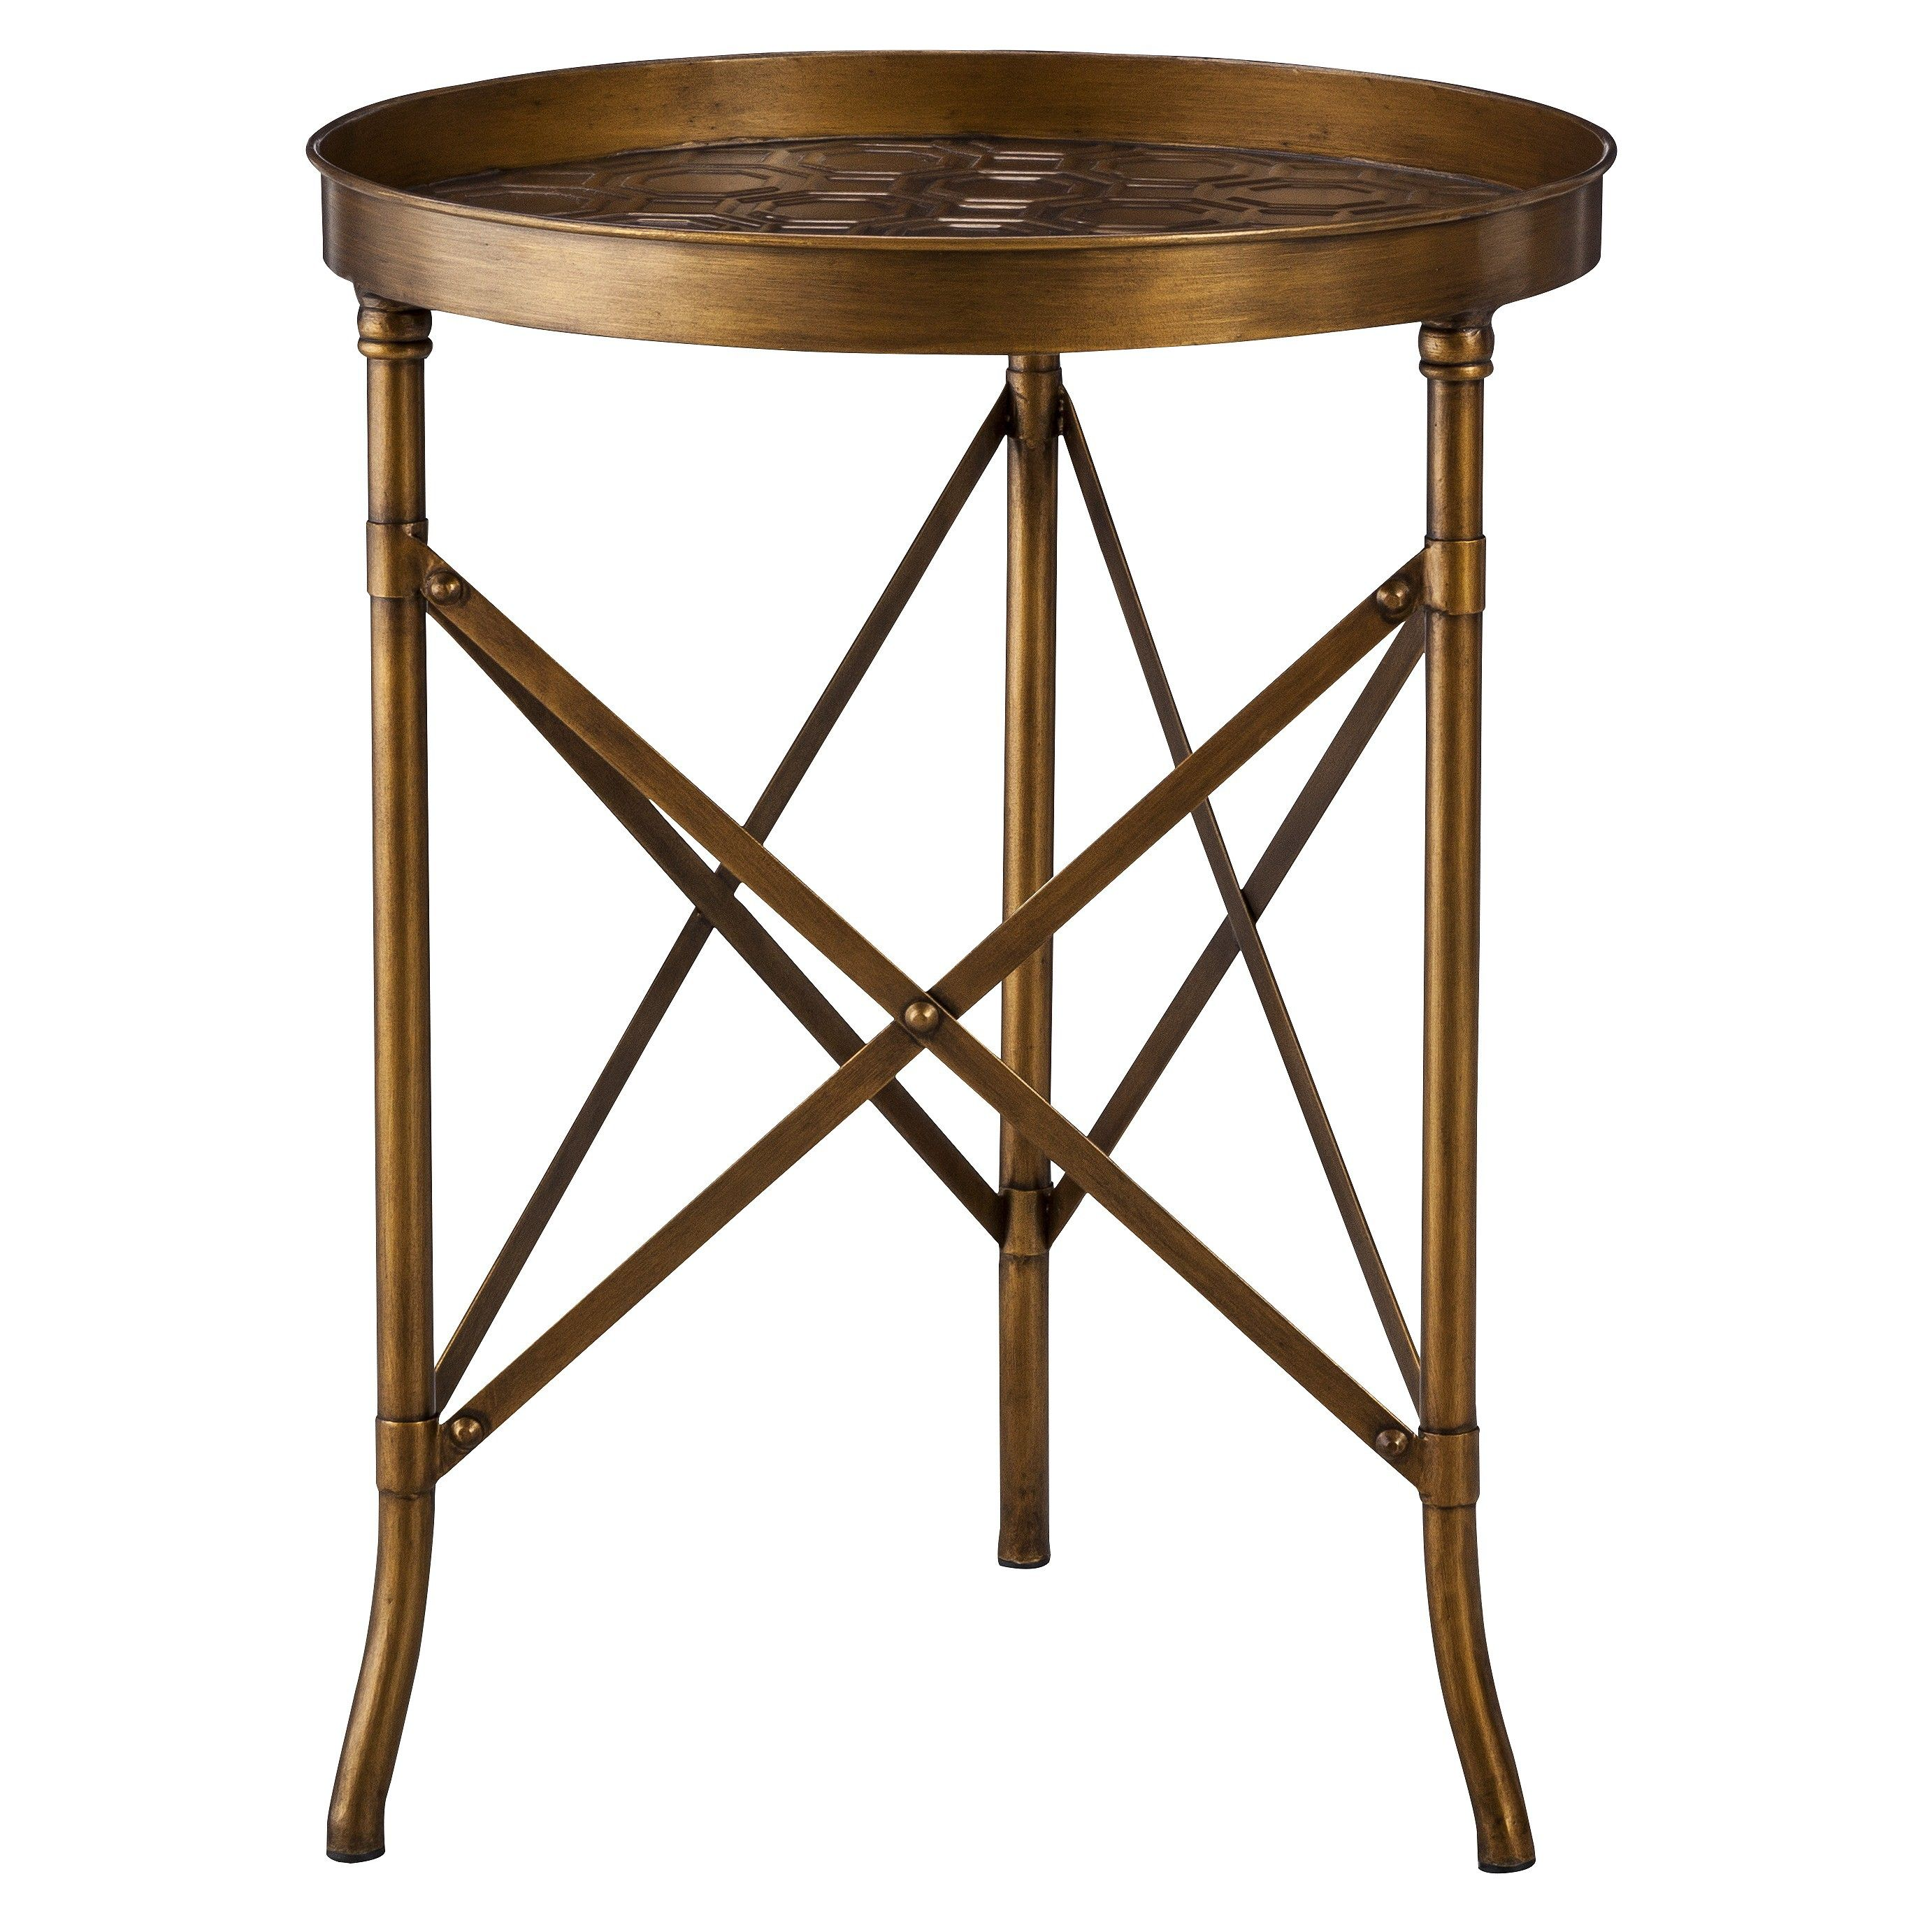 threshold stamped metal accent table gold target nightstand battery powered indoor lamps nautical small retro sofa cherry finish end tables side with marble top rustic half moon